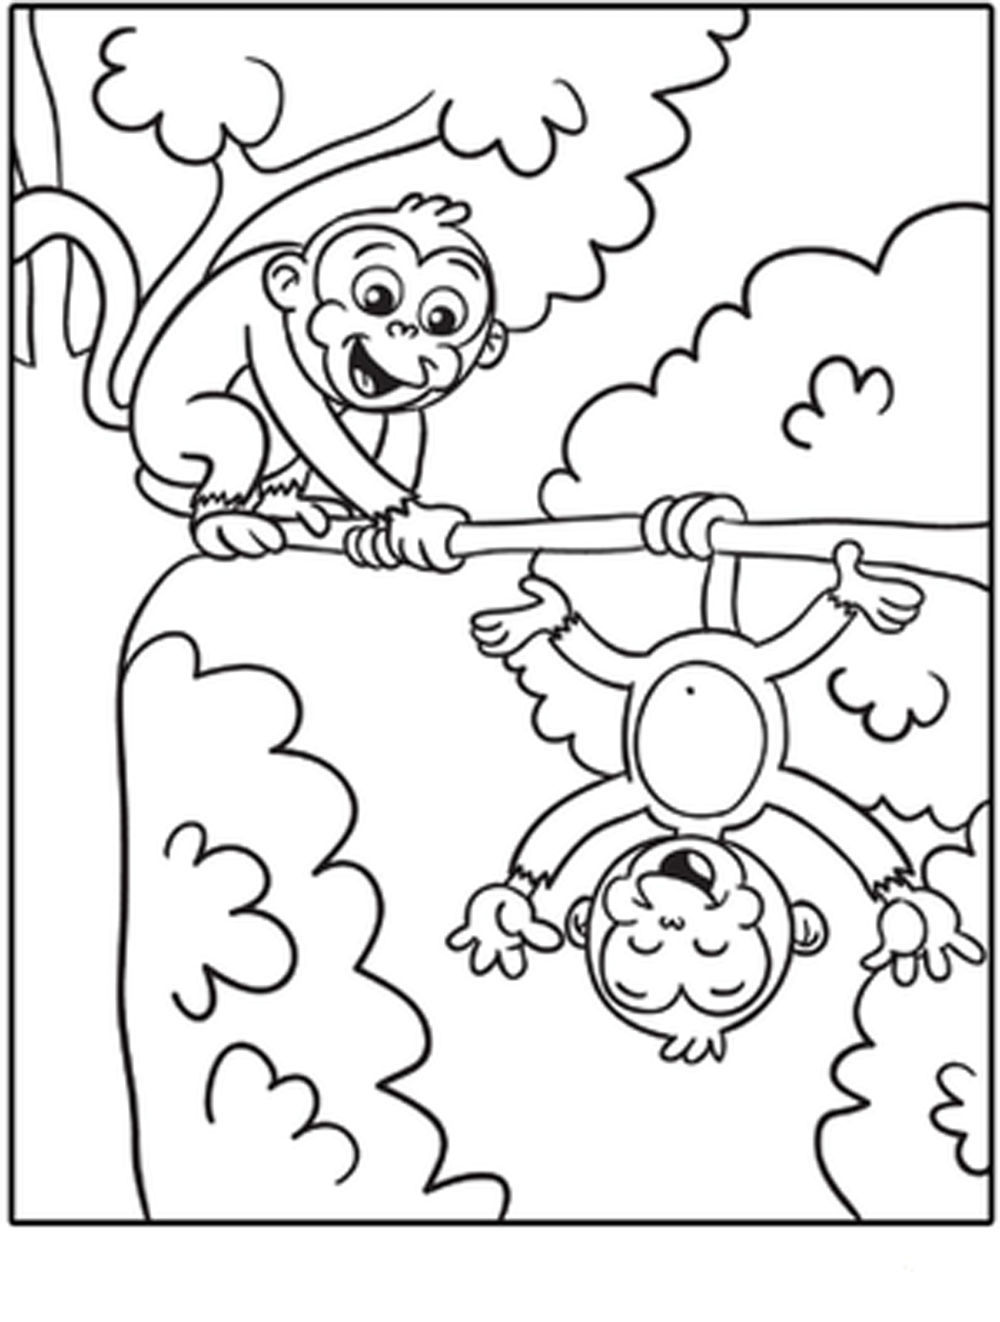 Kids printable coloring sheets - Check